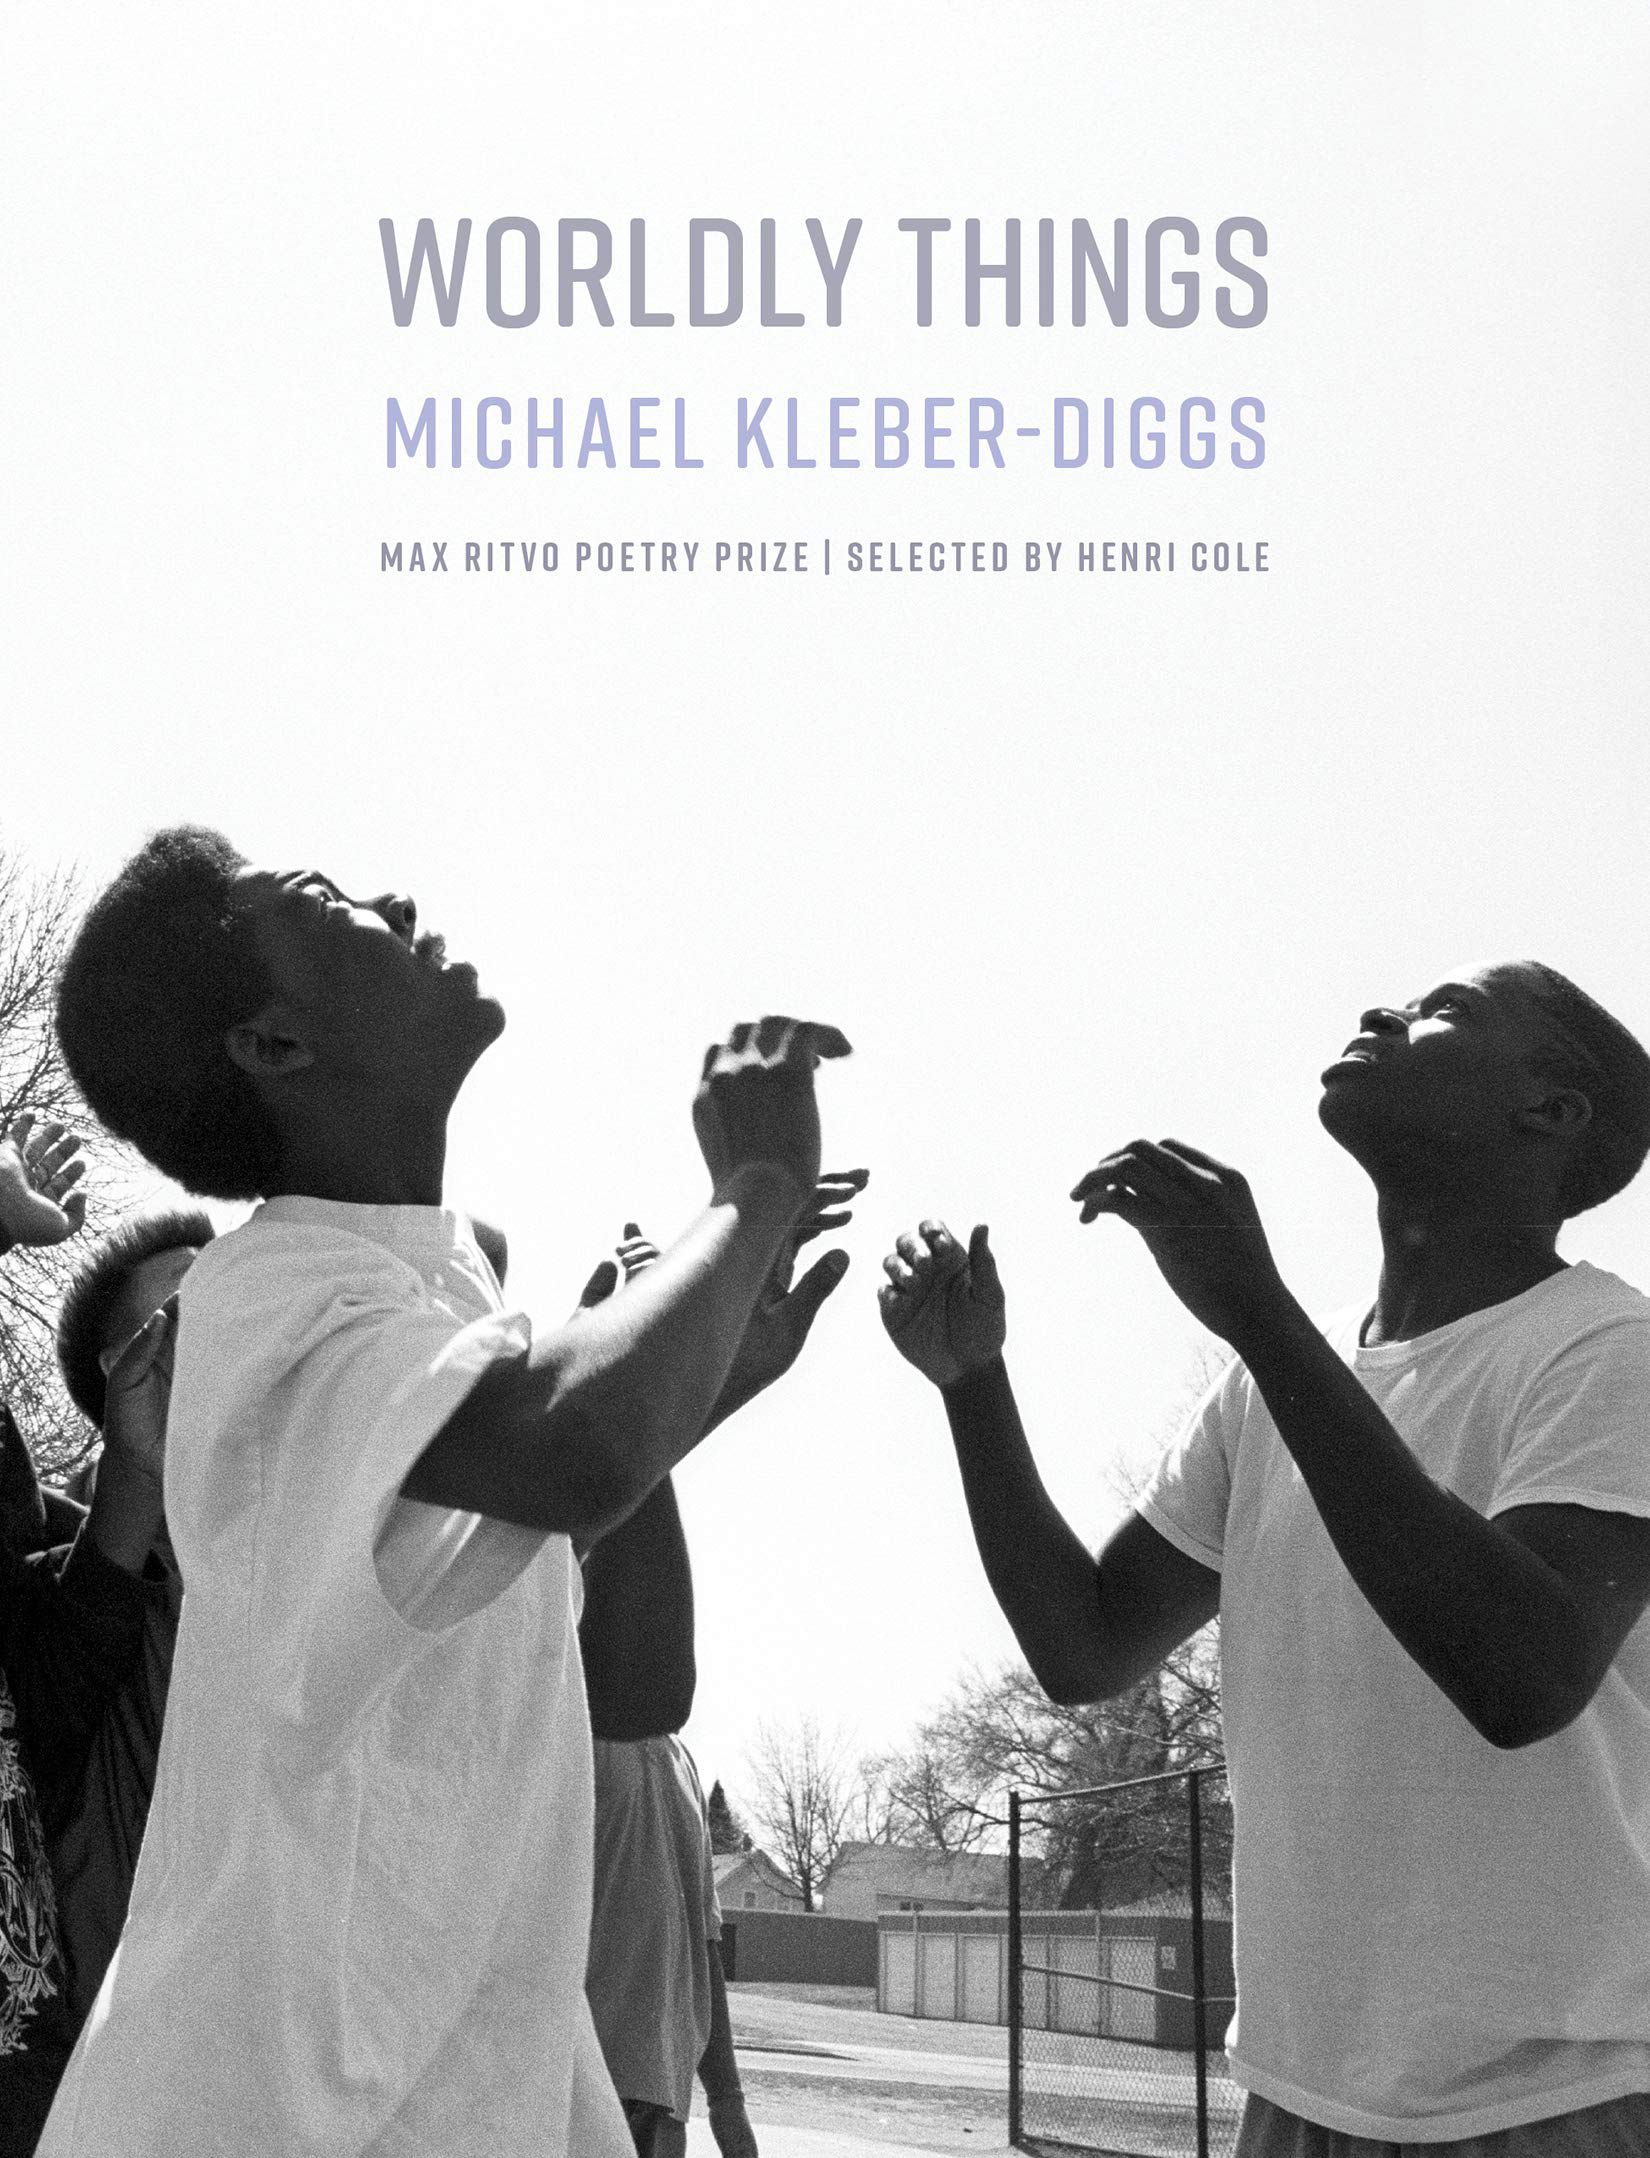 worldly things by michael kleber-diggs book cover